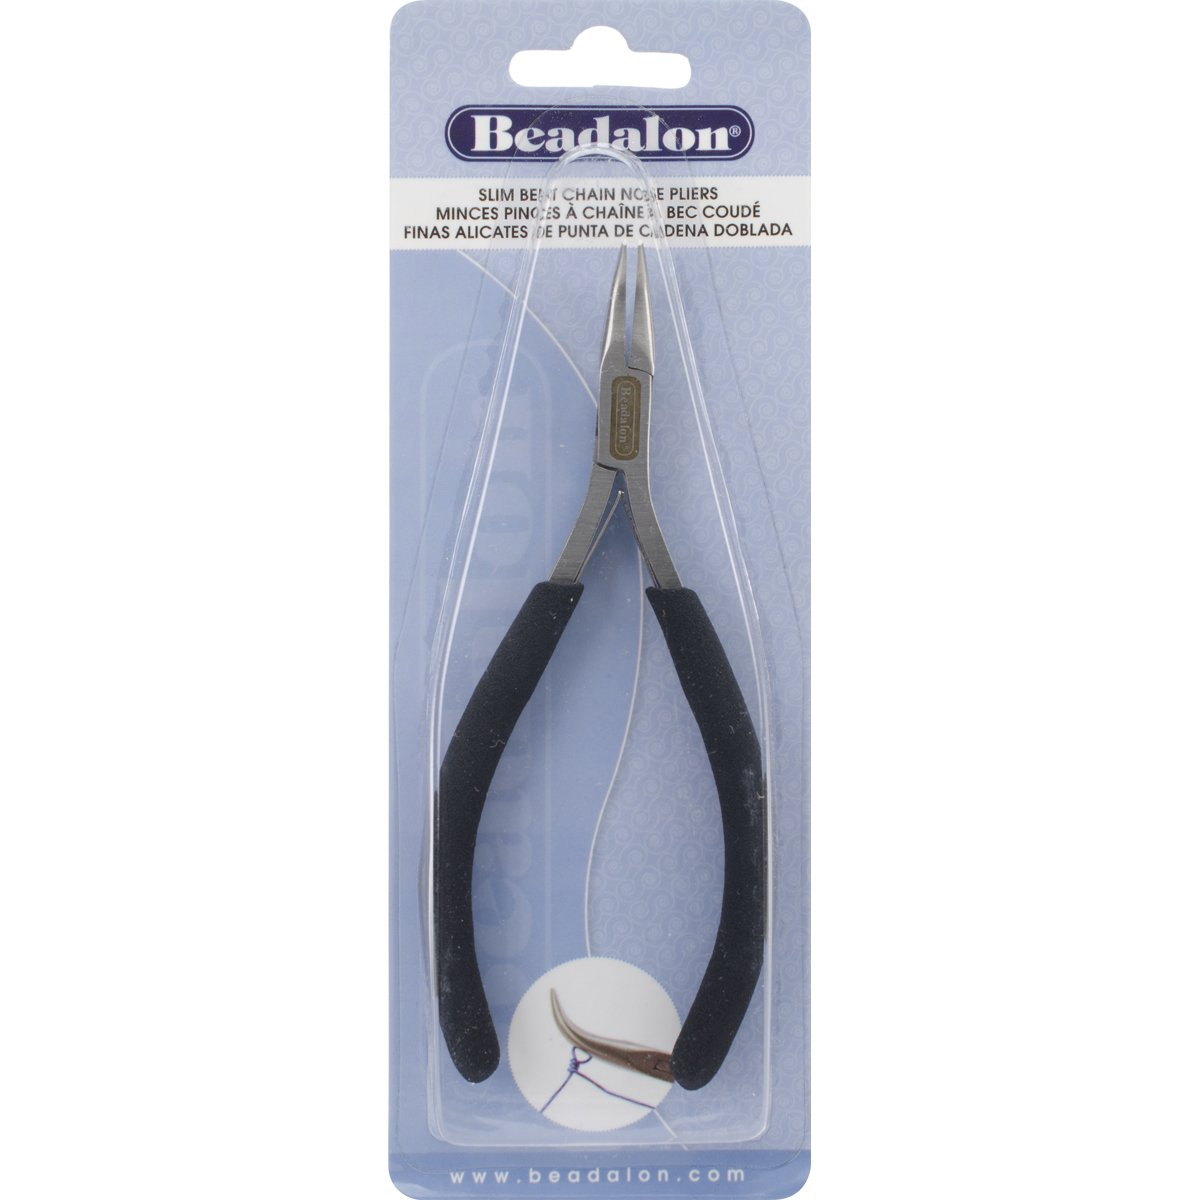 Amazon.com: Beadalon Slim Bent Chain Nose Pliers for Jewelry Making (3 Pack): Arts, Crafts & Sewing